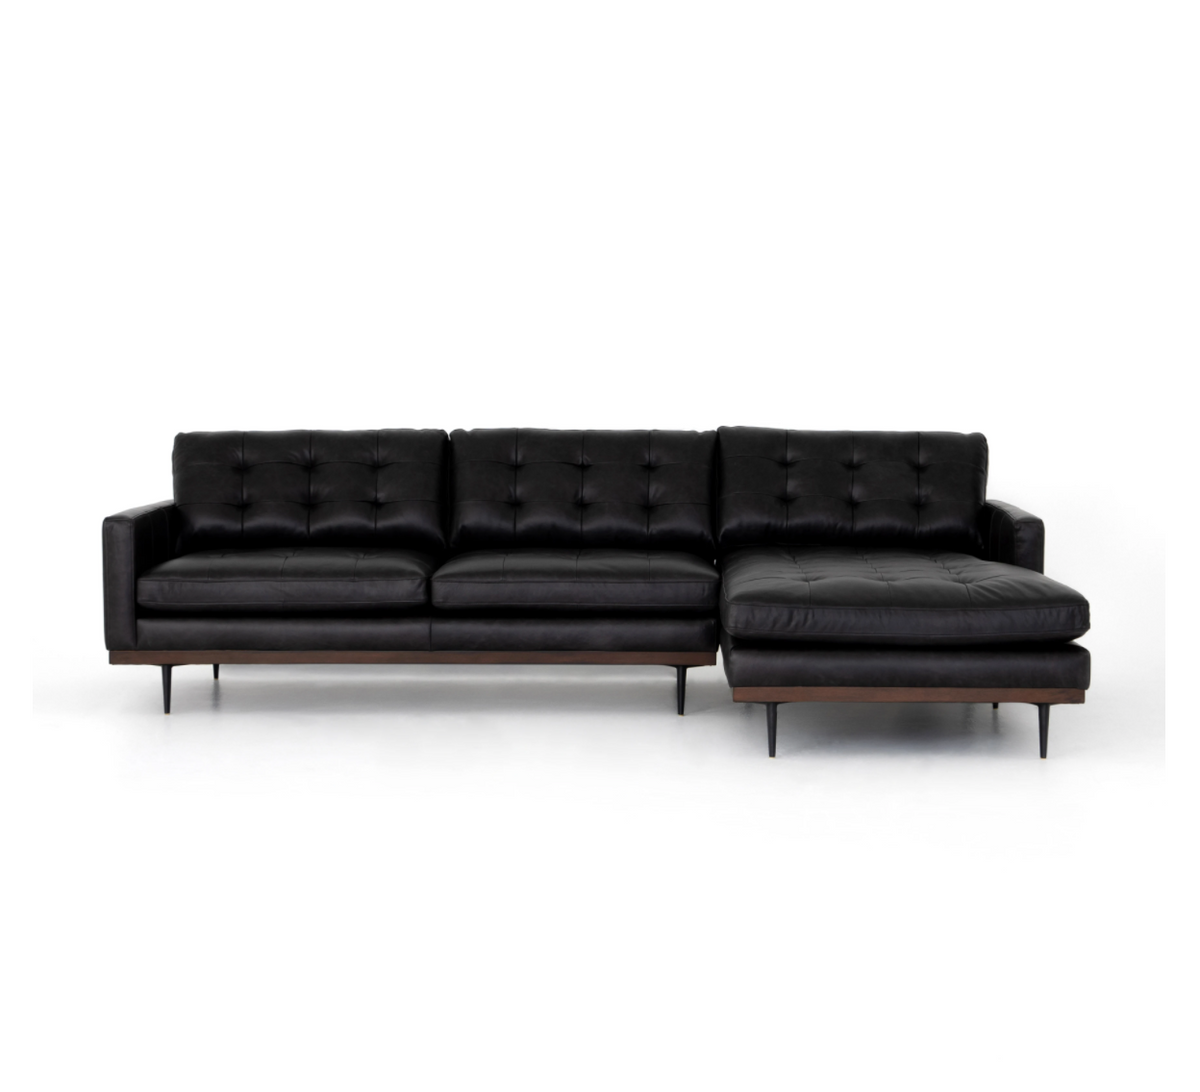 Lexi 2-Piece Leather Sectional